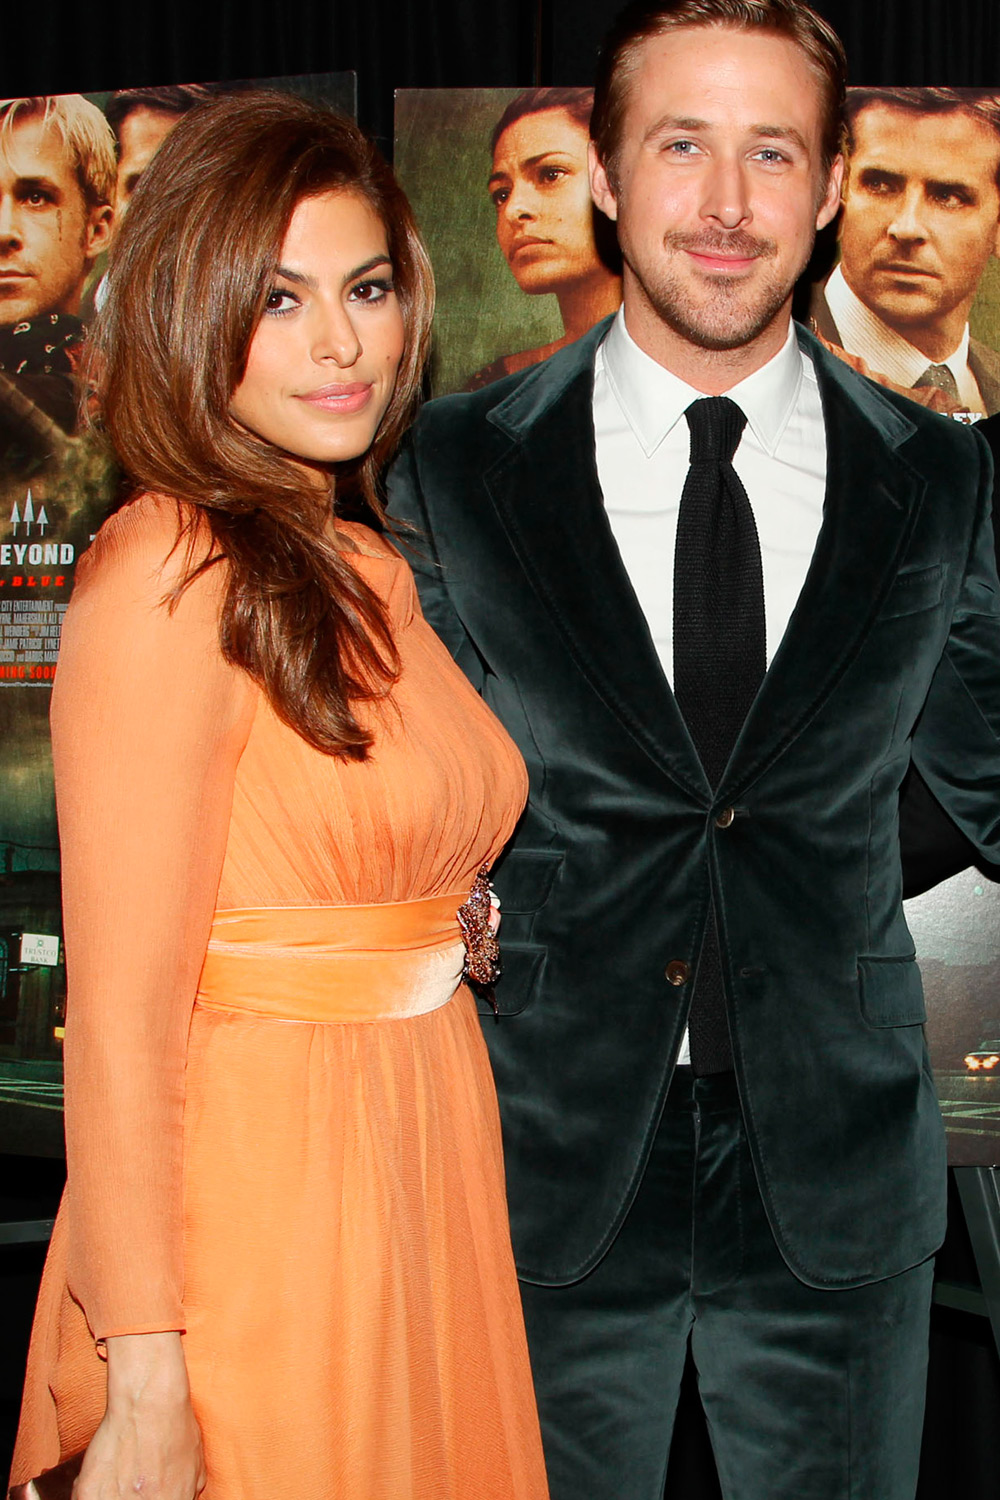 Ryan Gosling & Eva Mendes Are About To Have Baby No. 2!